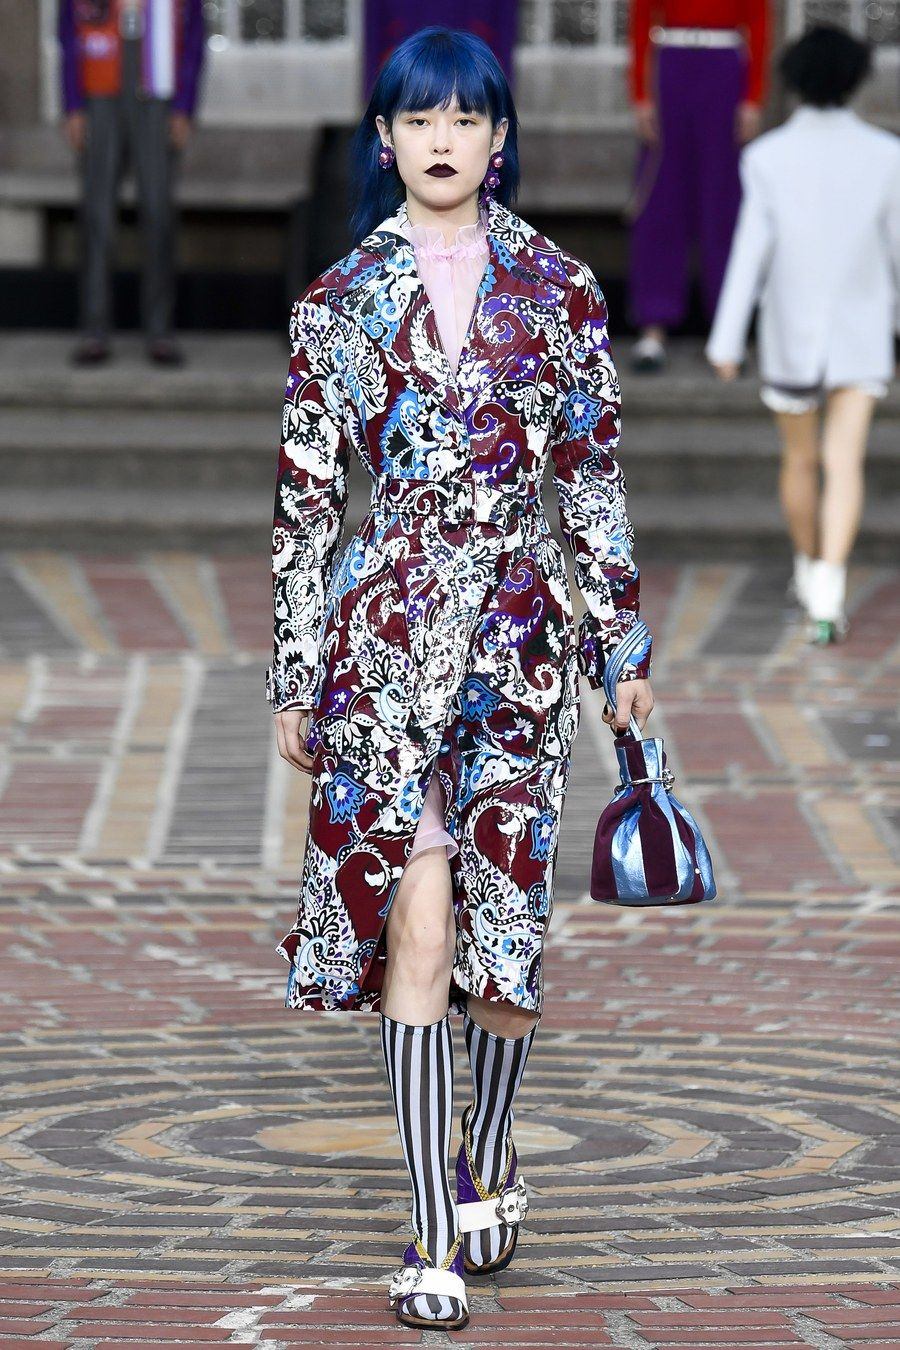 Fashion week Spring kenzo runway review for woman